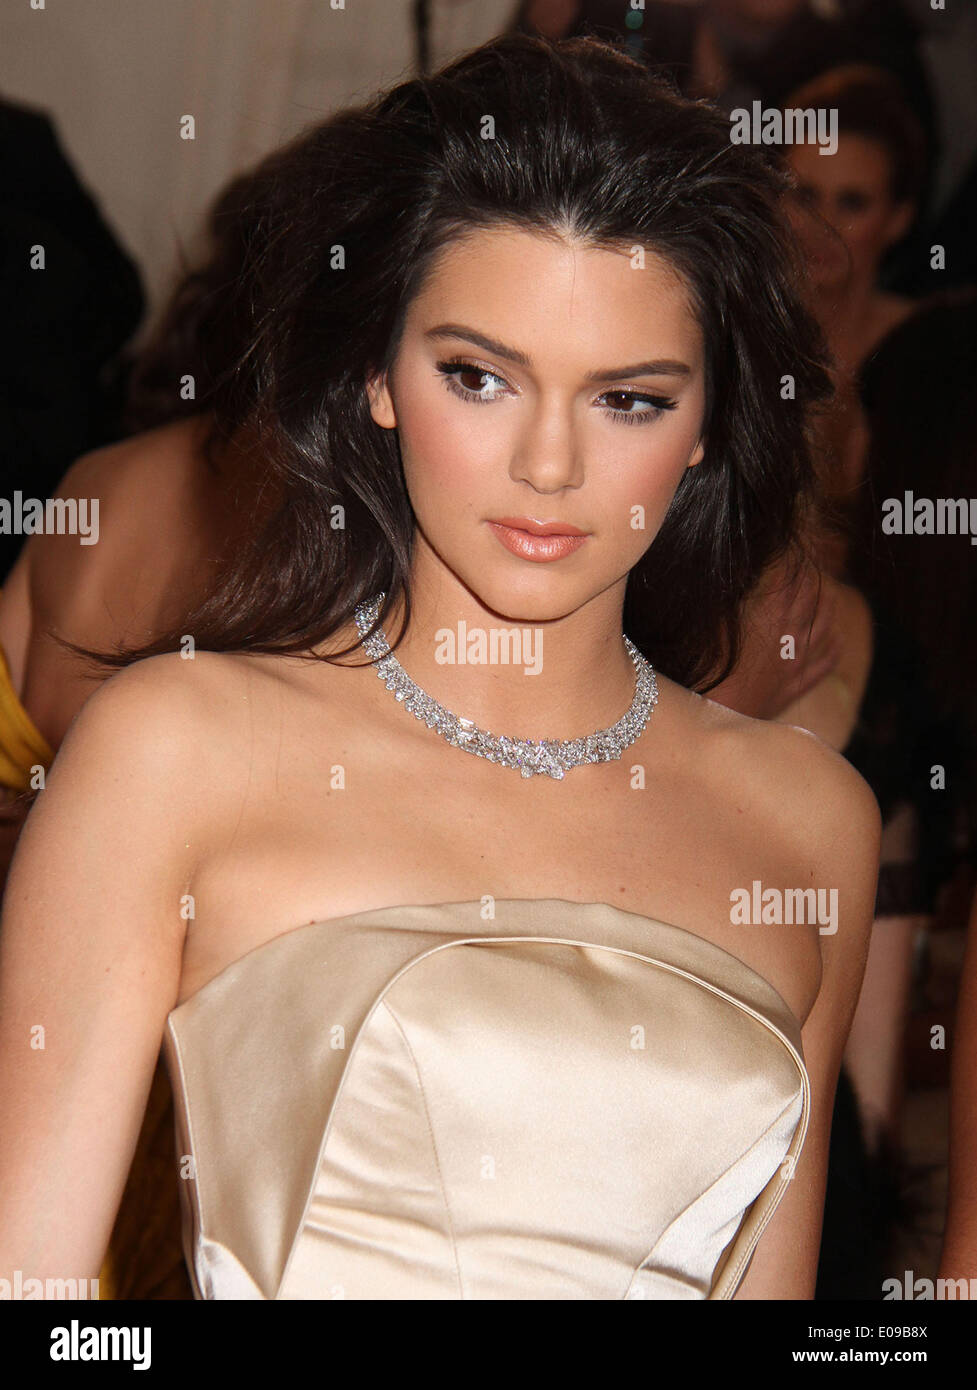 New York, New York, USA. 5th May, 2014. KENDALL JENNER attends the 2014 Costume Institute Benefit Gala opening of 'Charles James: Beyond Fashion and the new Anna Wintour Costume Center' held at the Metropolitan Museum of Art. © Nancy Kaszerman/ZUMAPRESS.com/Alamy Live News - Stock Image